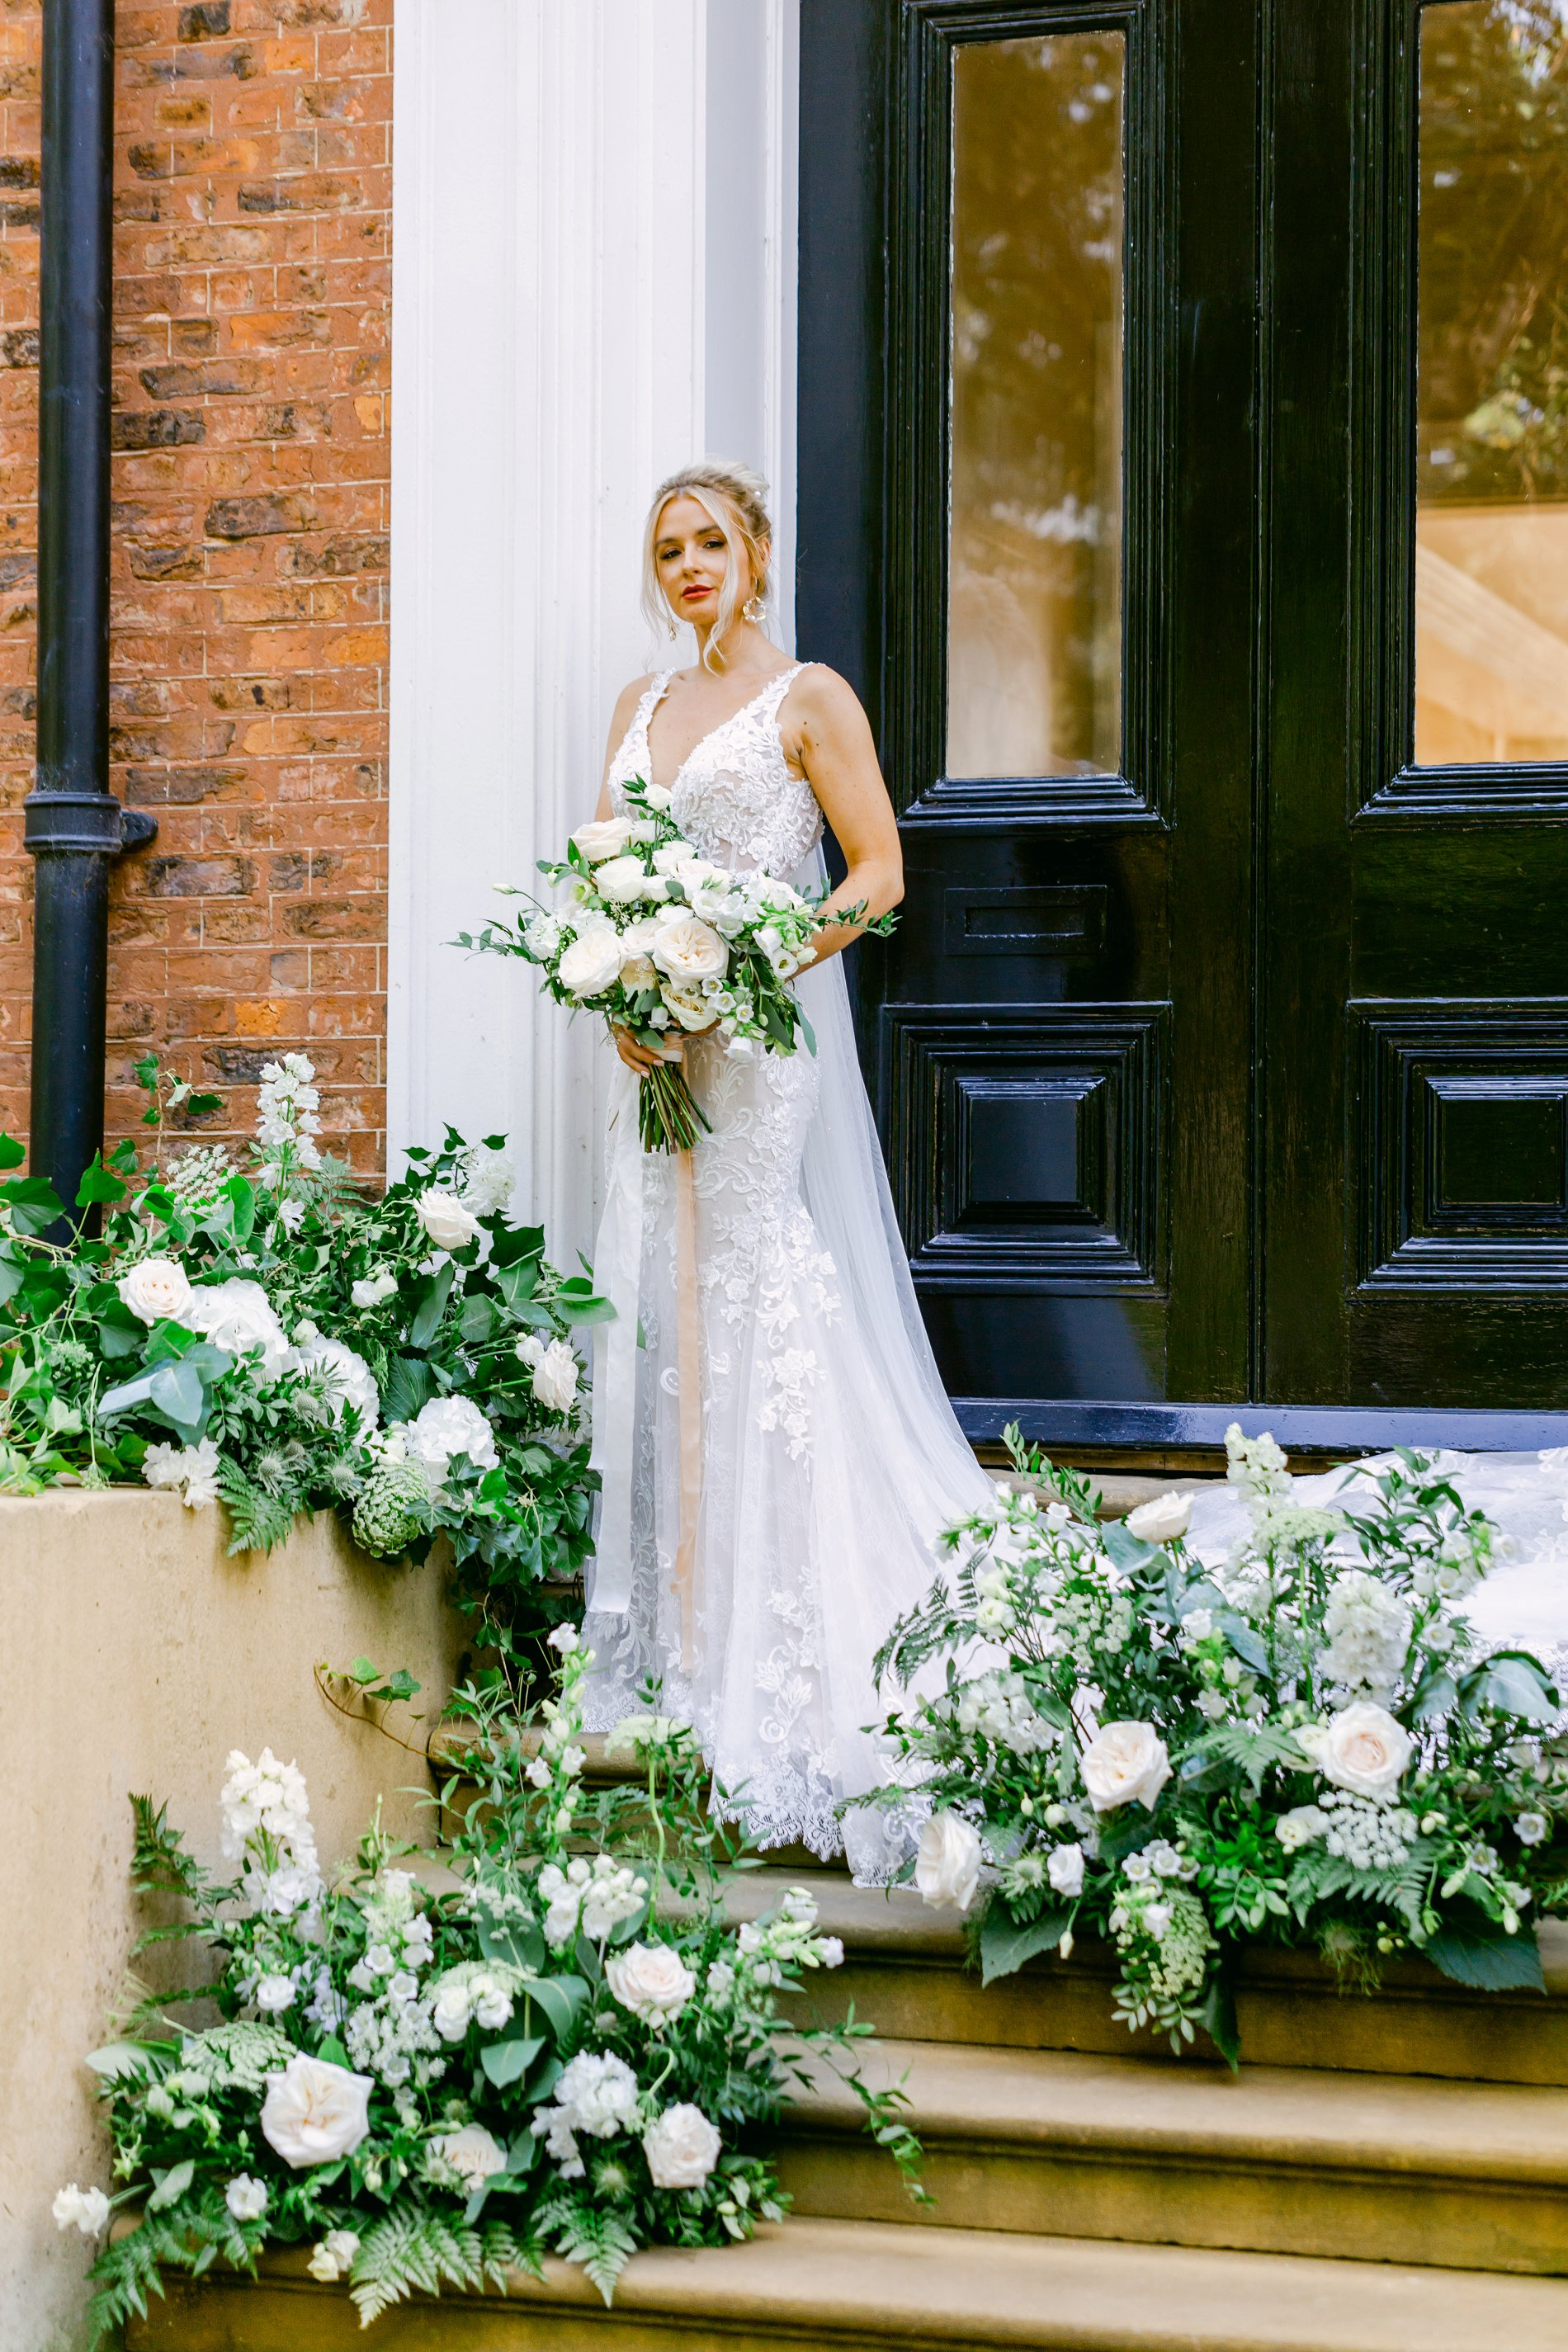 An Elegant UNVEILED Network wedding shoot at Hirst Priory (c) Ailsa Reeve Photography (33)